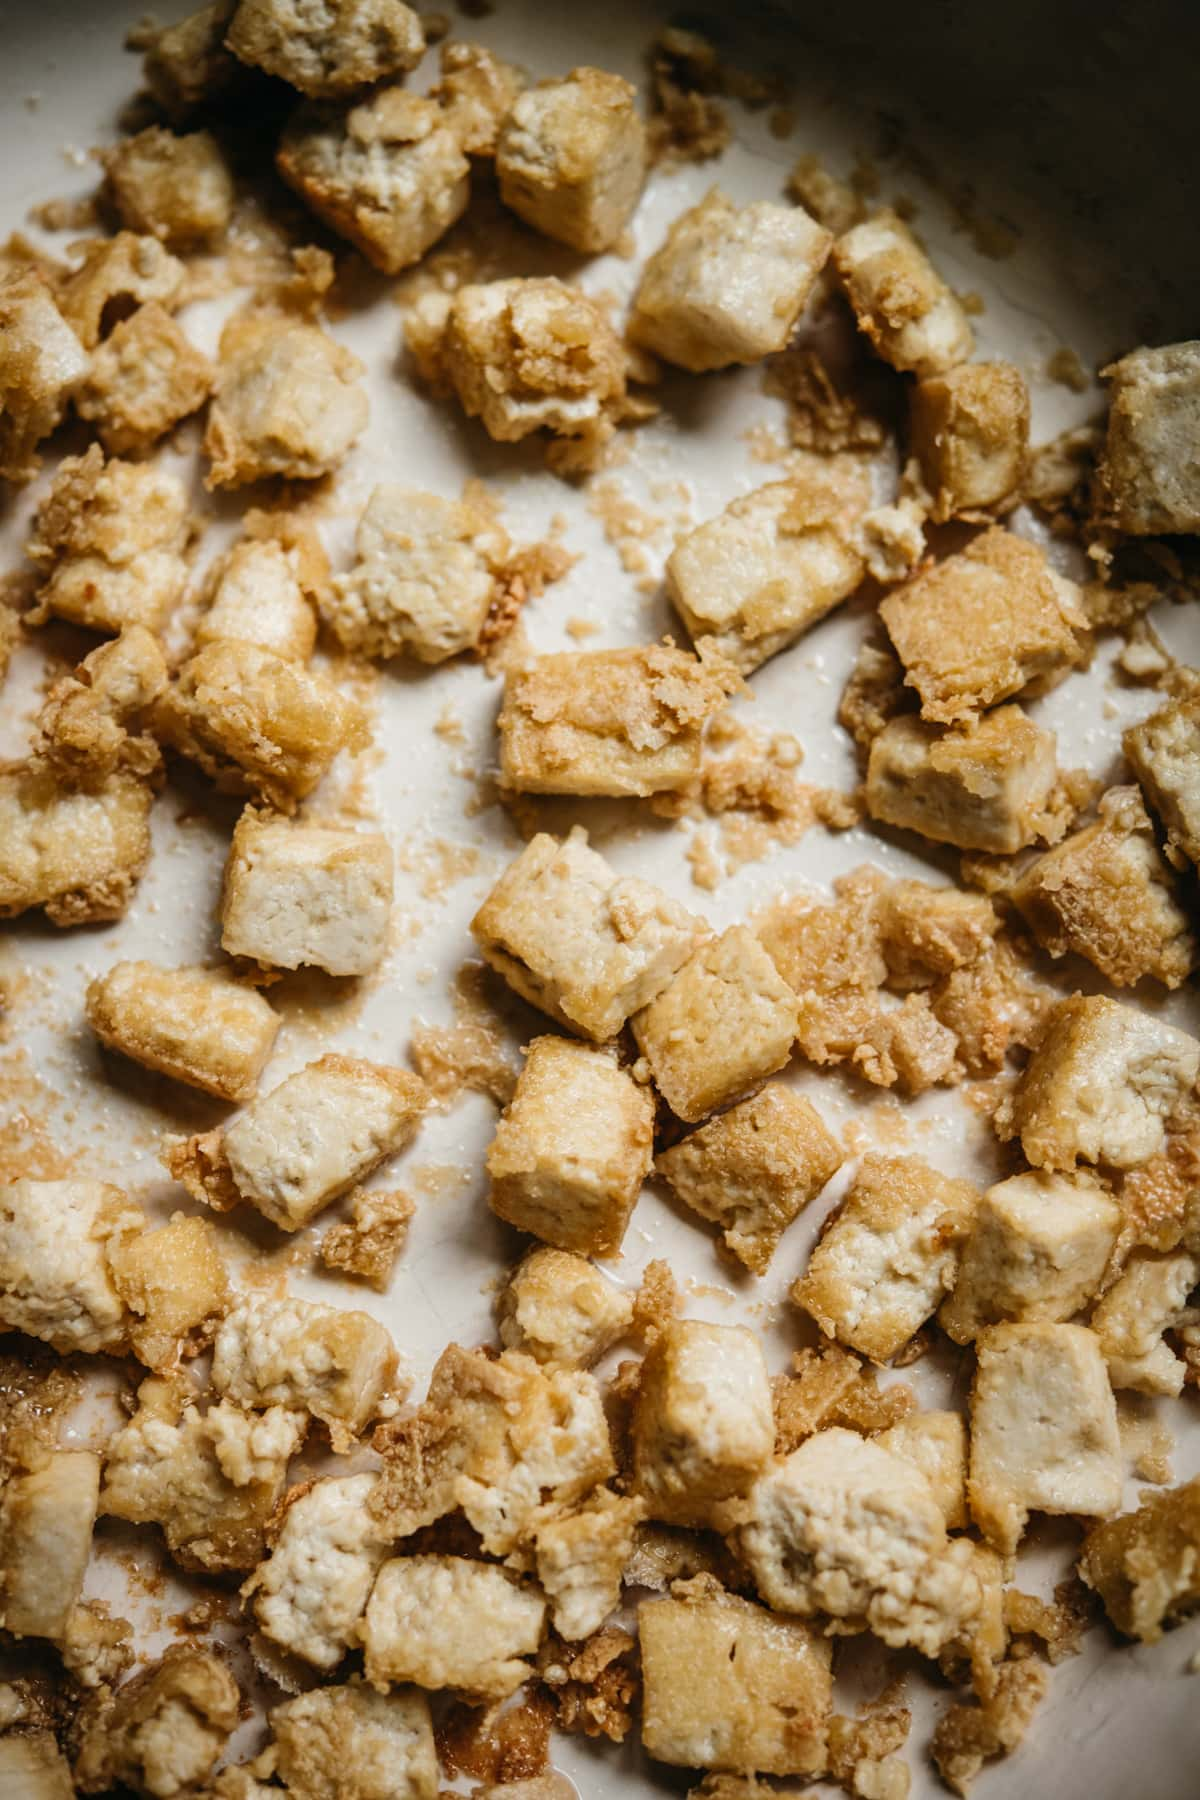 close up view of crispy pan-fried tofu in a pan.